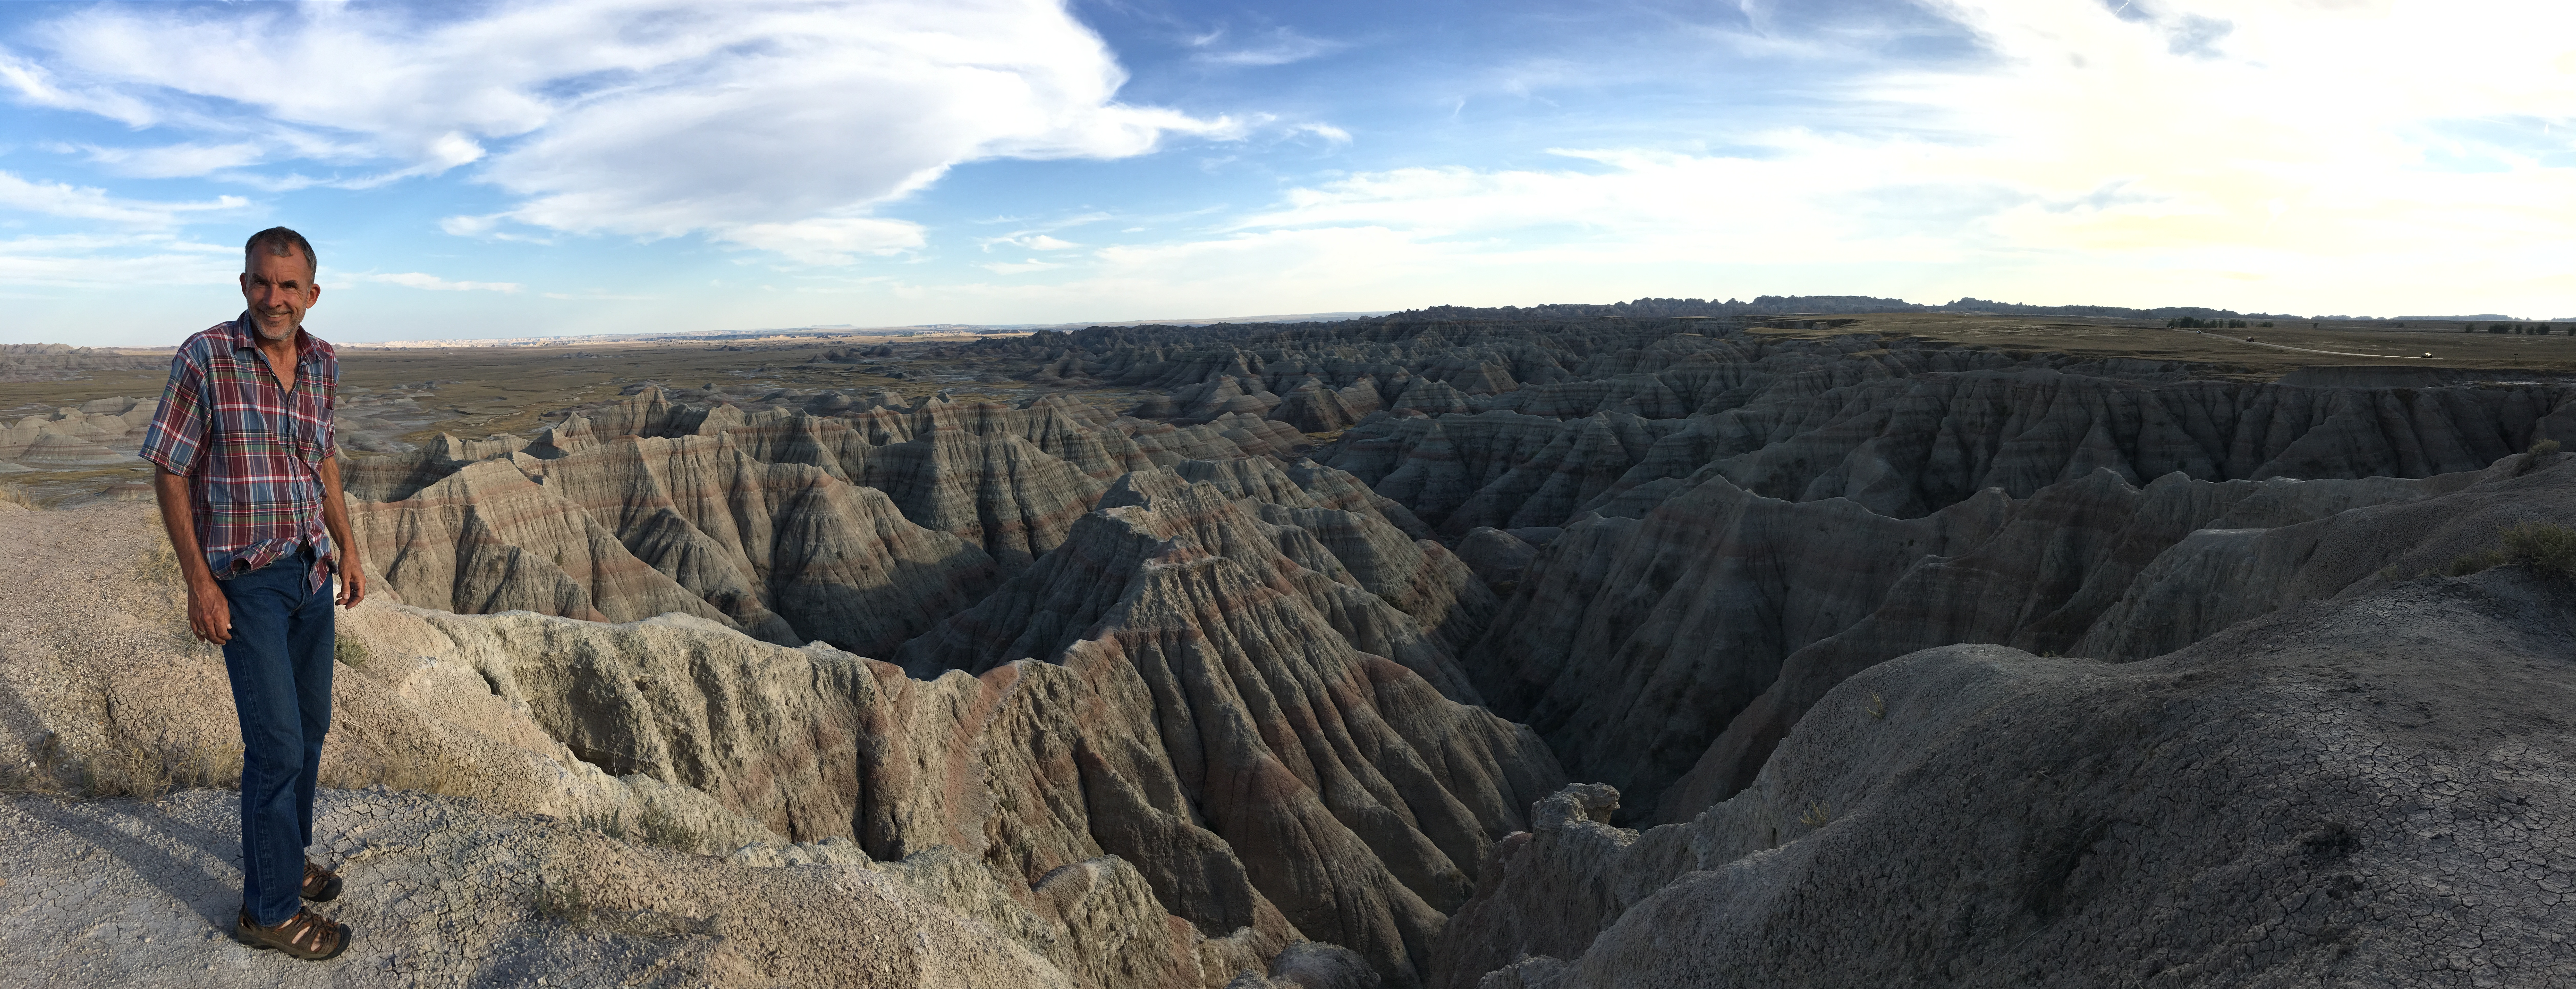 panorama of my dad at badlands national park